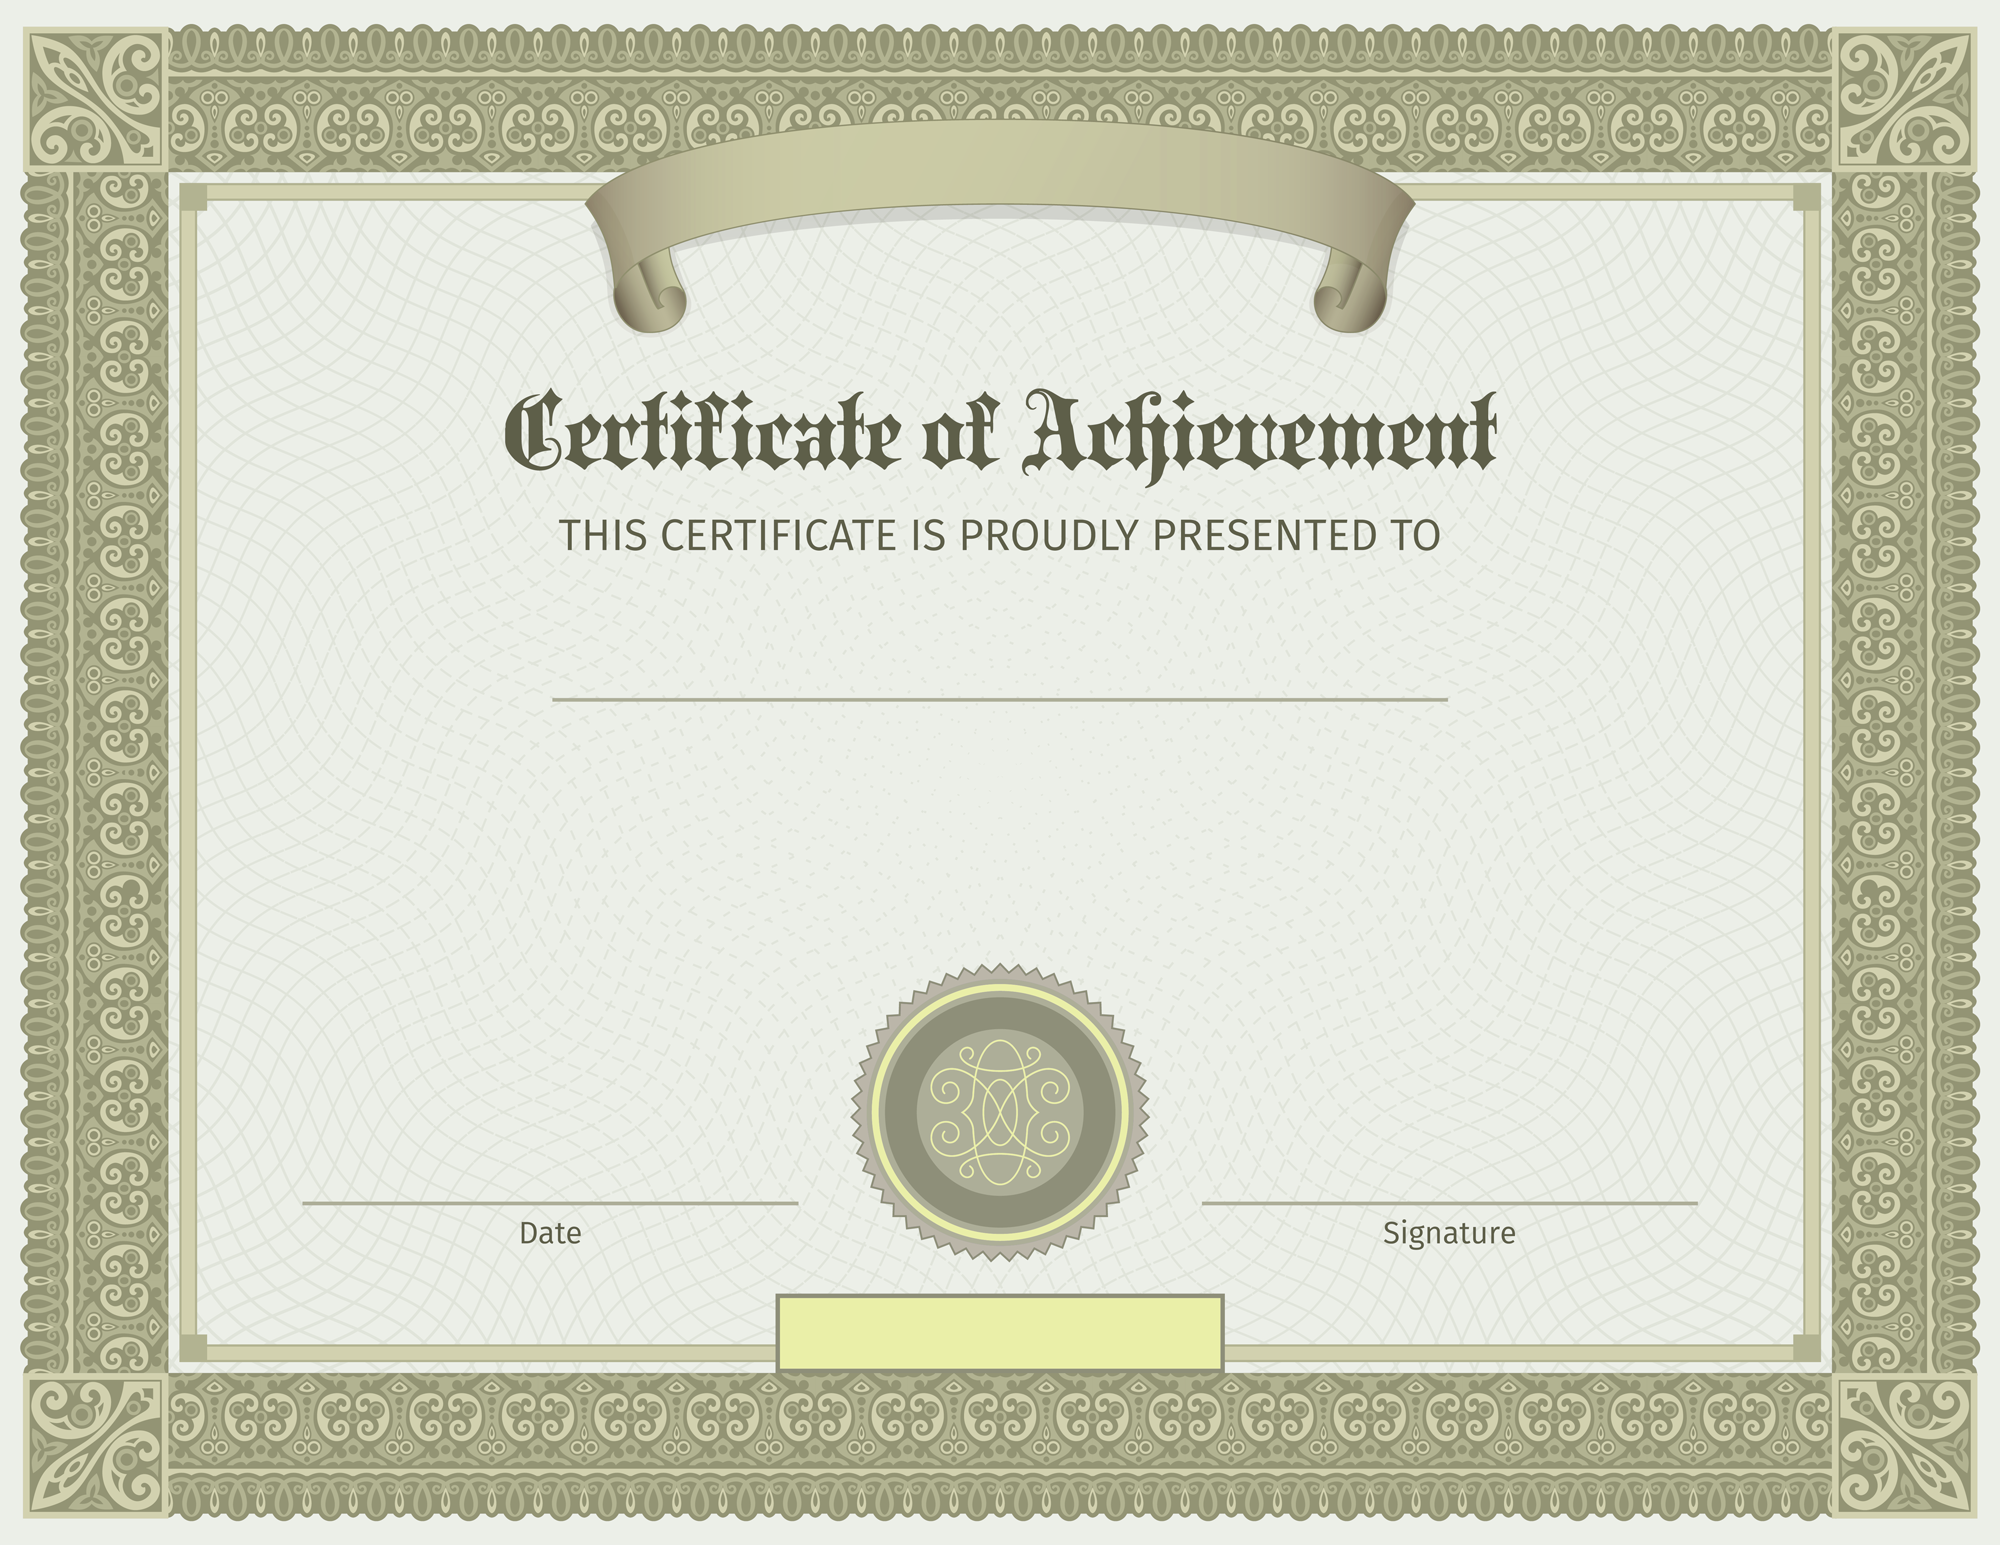 Certificate template png image purepng free transparent cc0 png certificate template yadclub Image collections